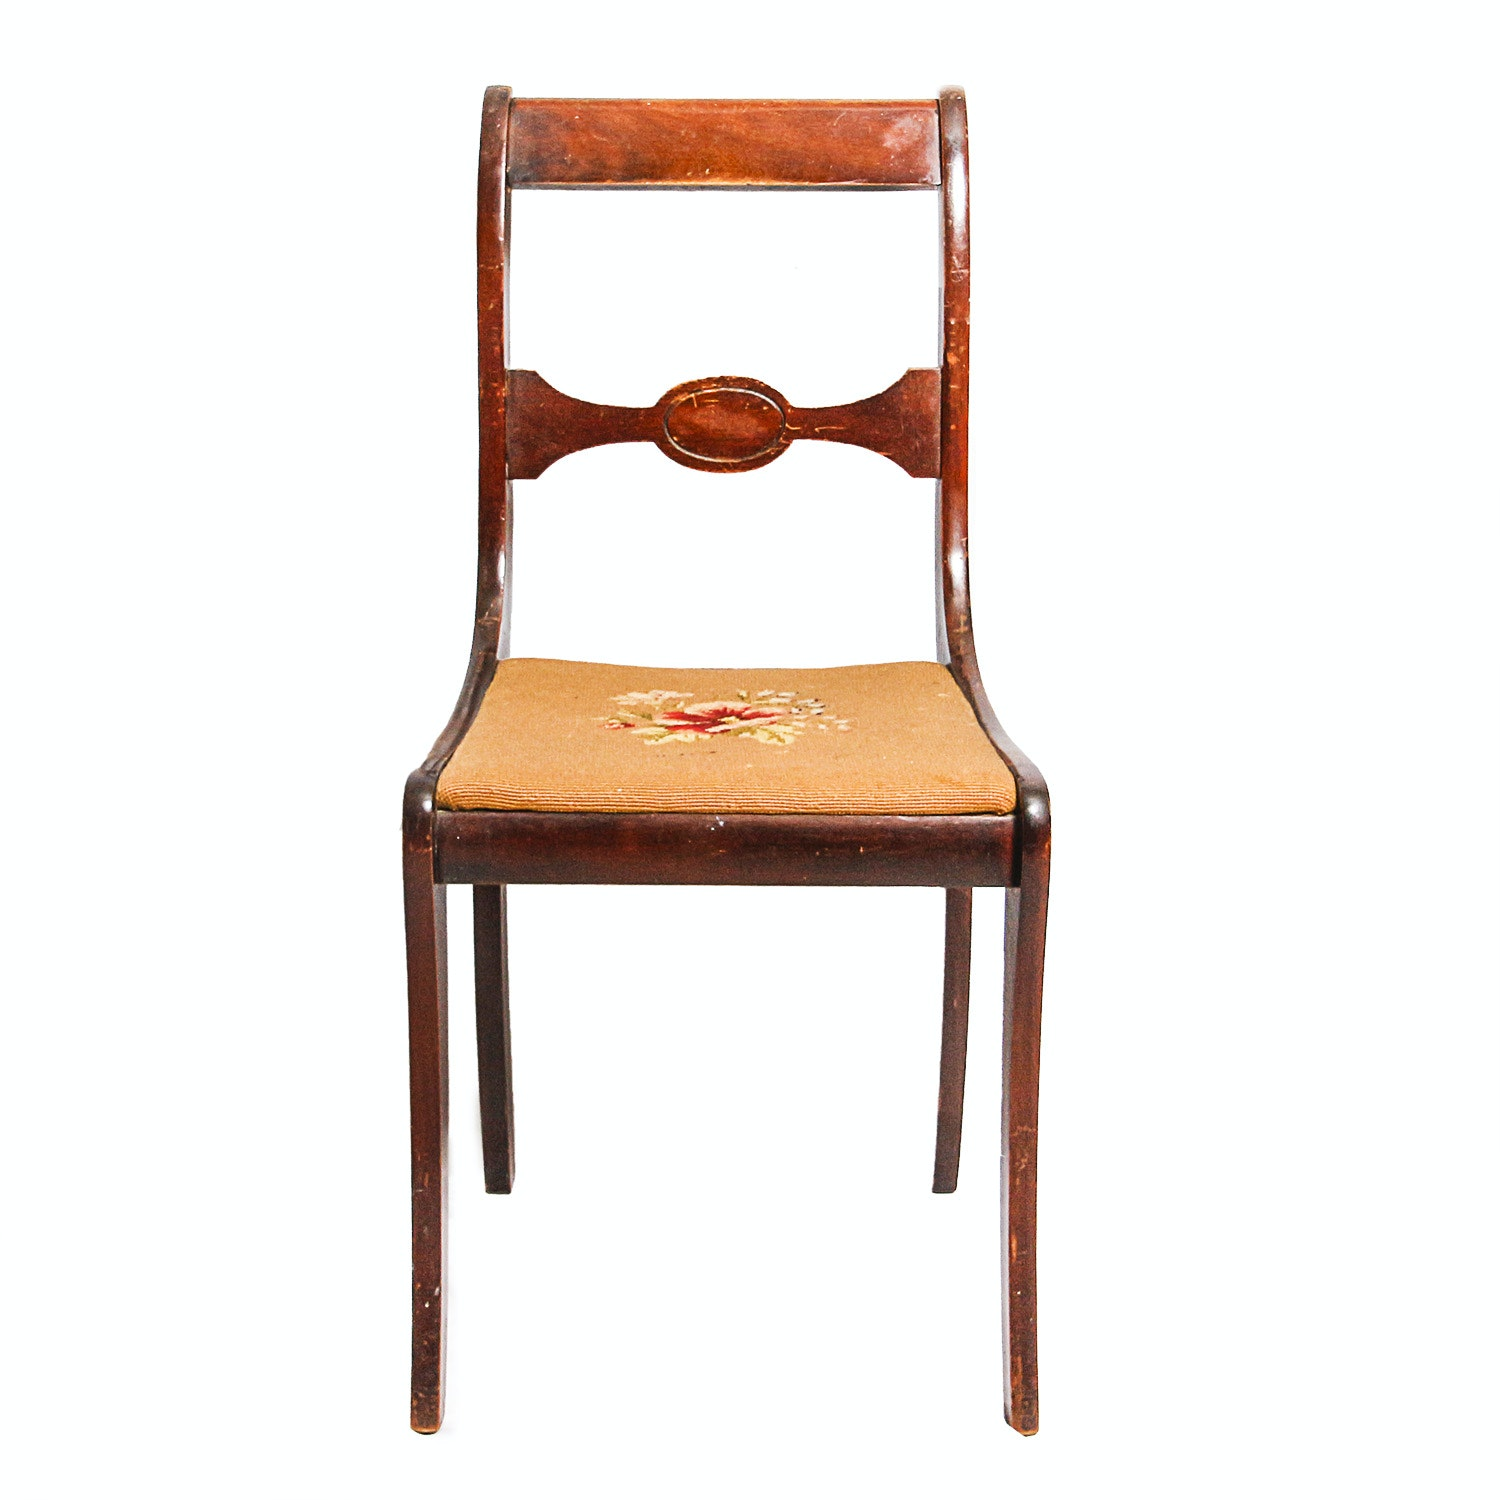 Popular Vintage Wooden Chair with Needlepoint Seat In 2018 - New wooden chair seats In 2018